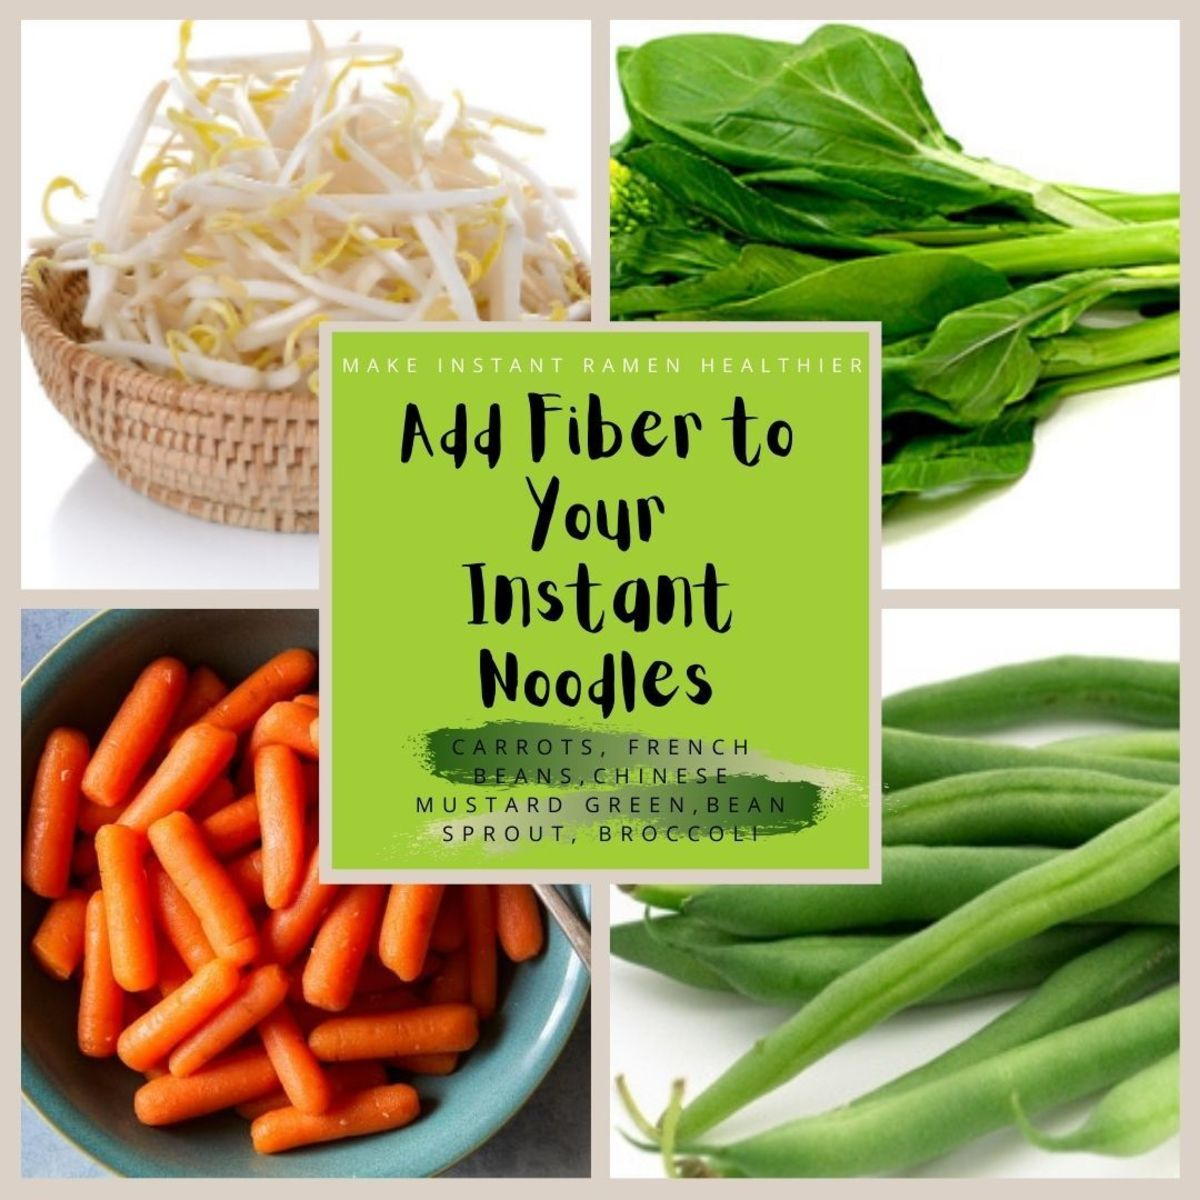 How to make noodles healthy? By adding fiber